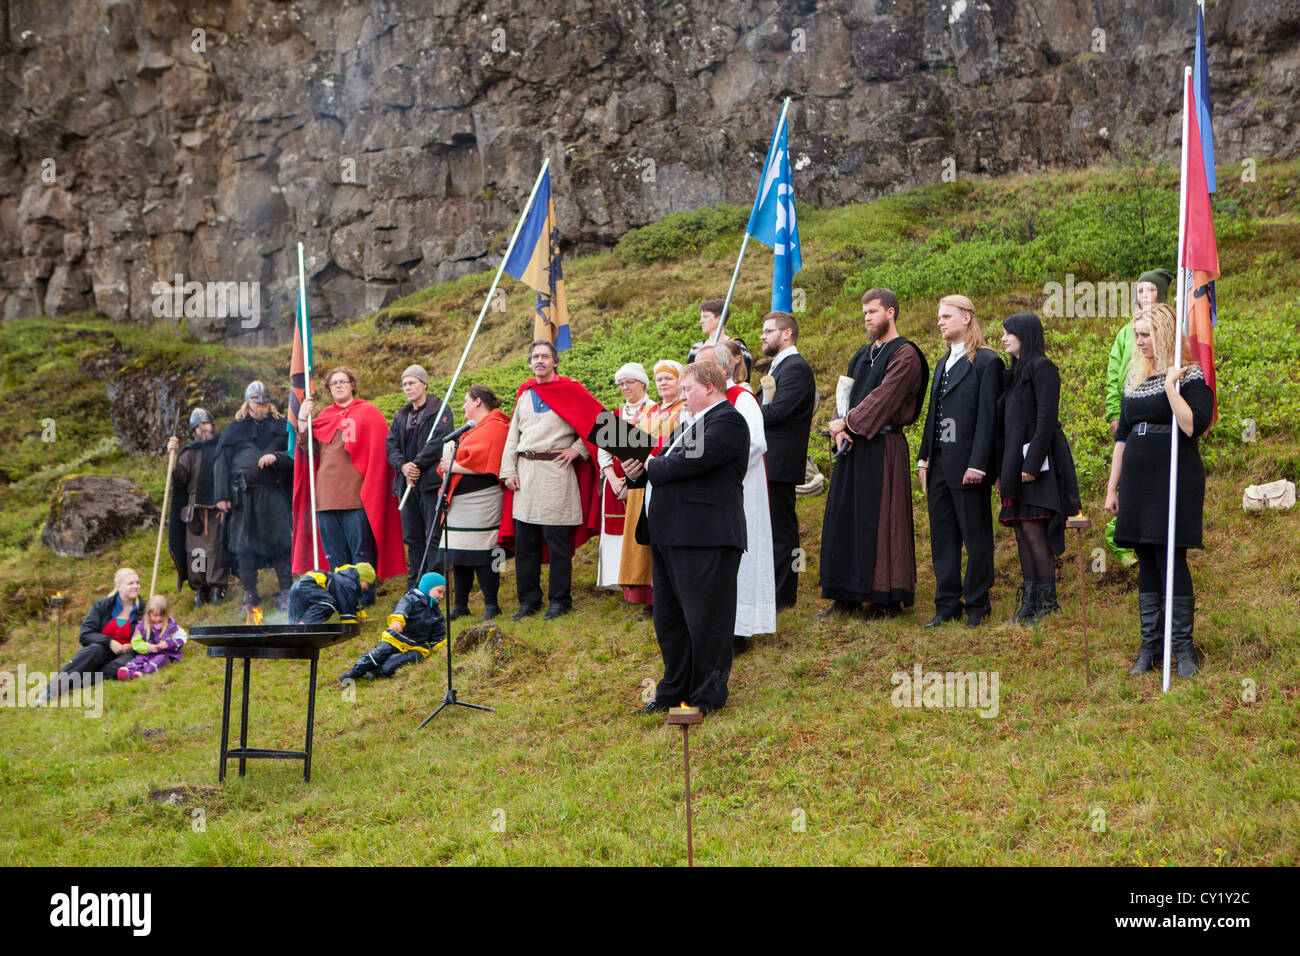 Believers in Odin, Thor and the other old Norse gods, gather at Thingvellir in Iceland in June 2012. - Stock Image